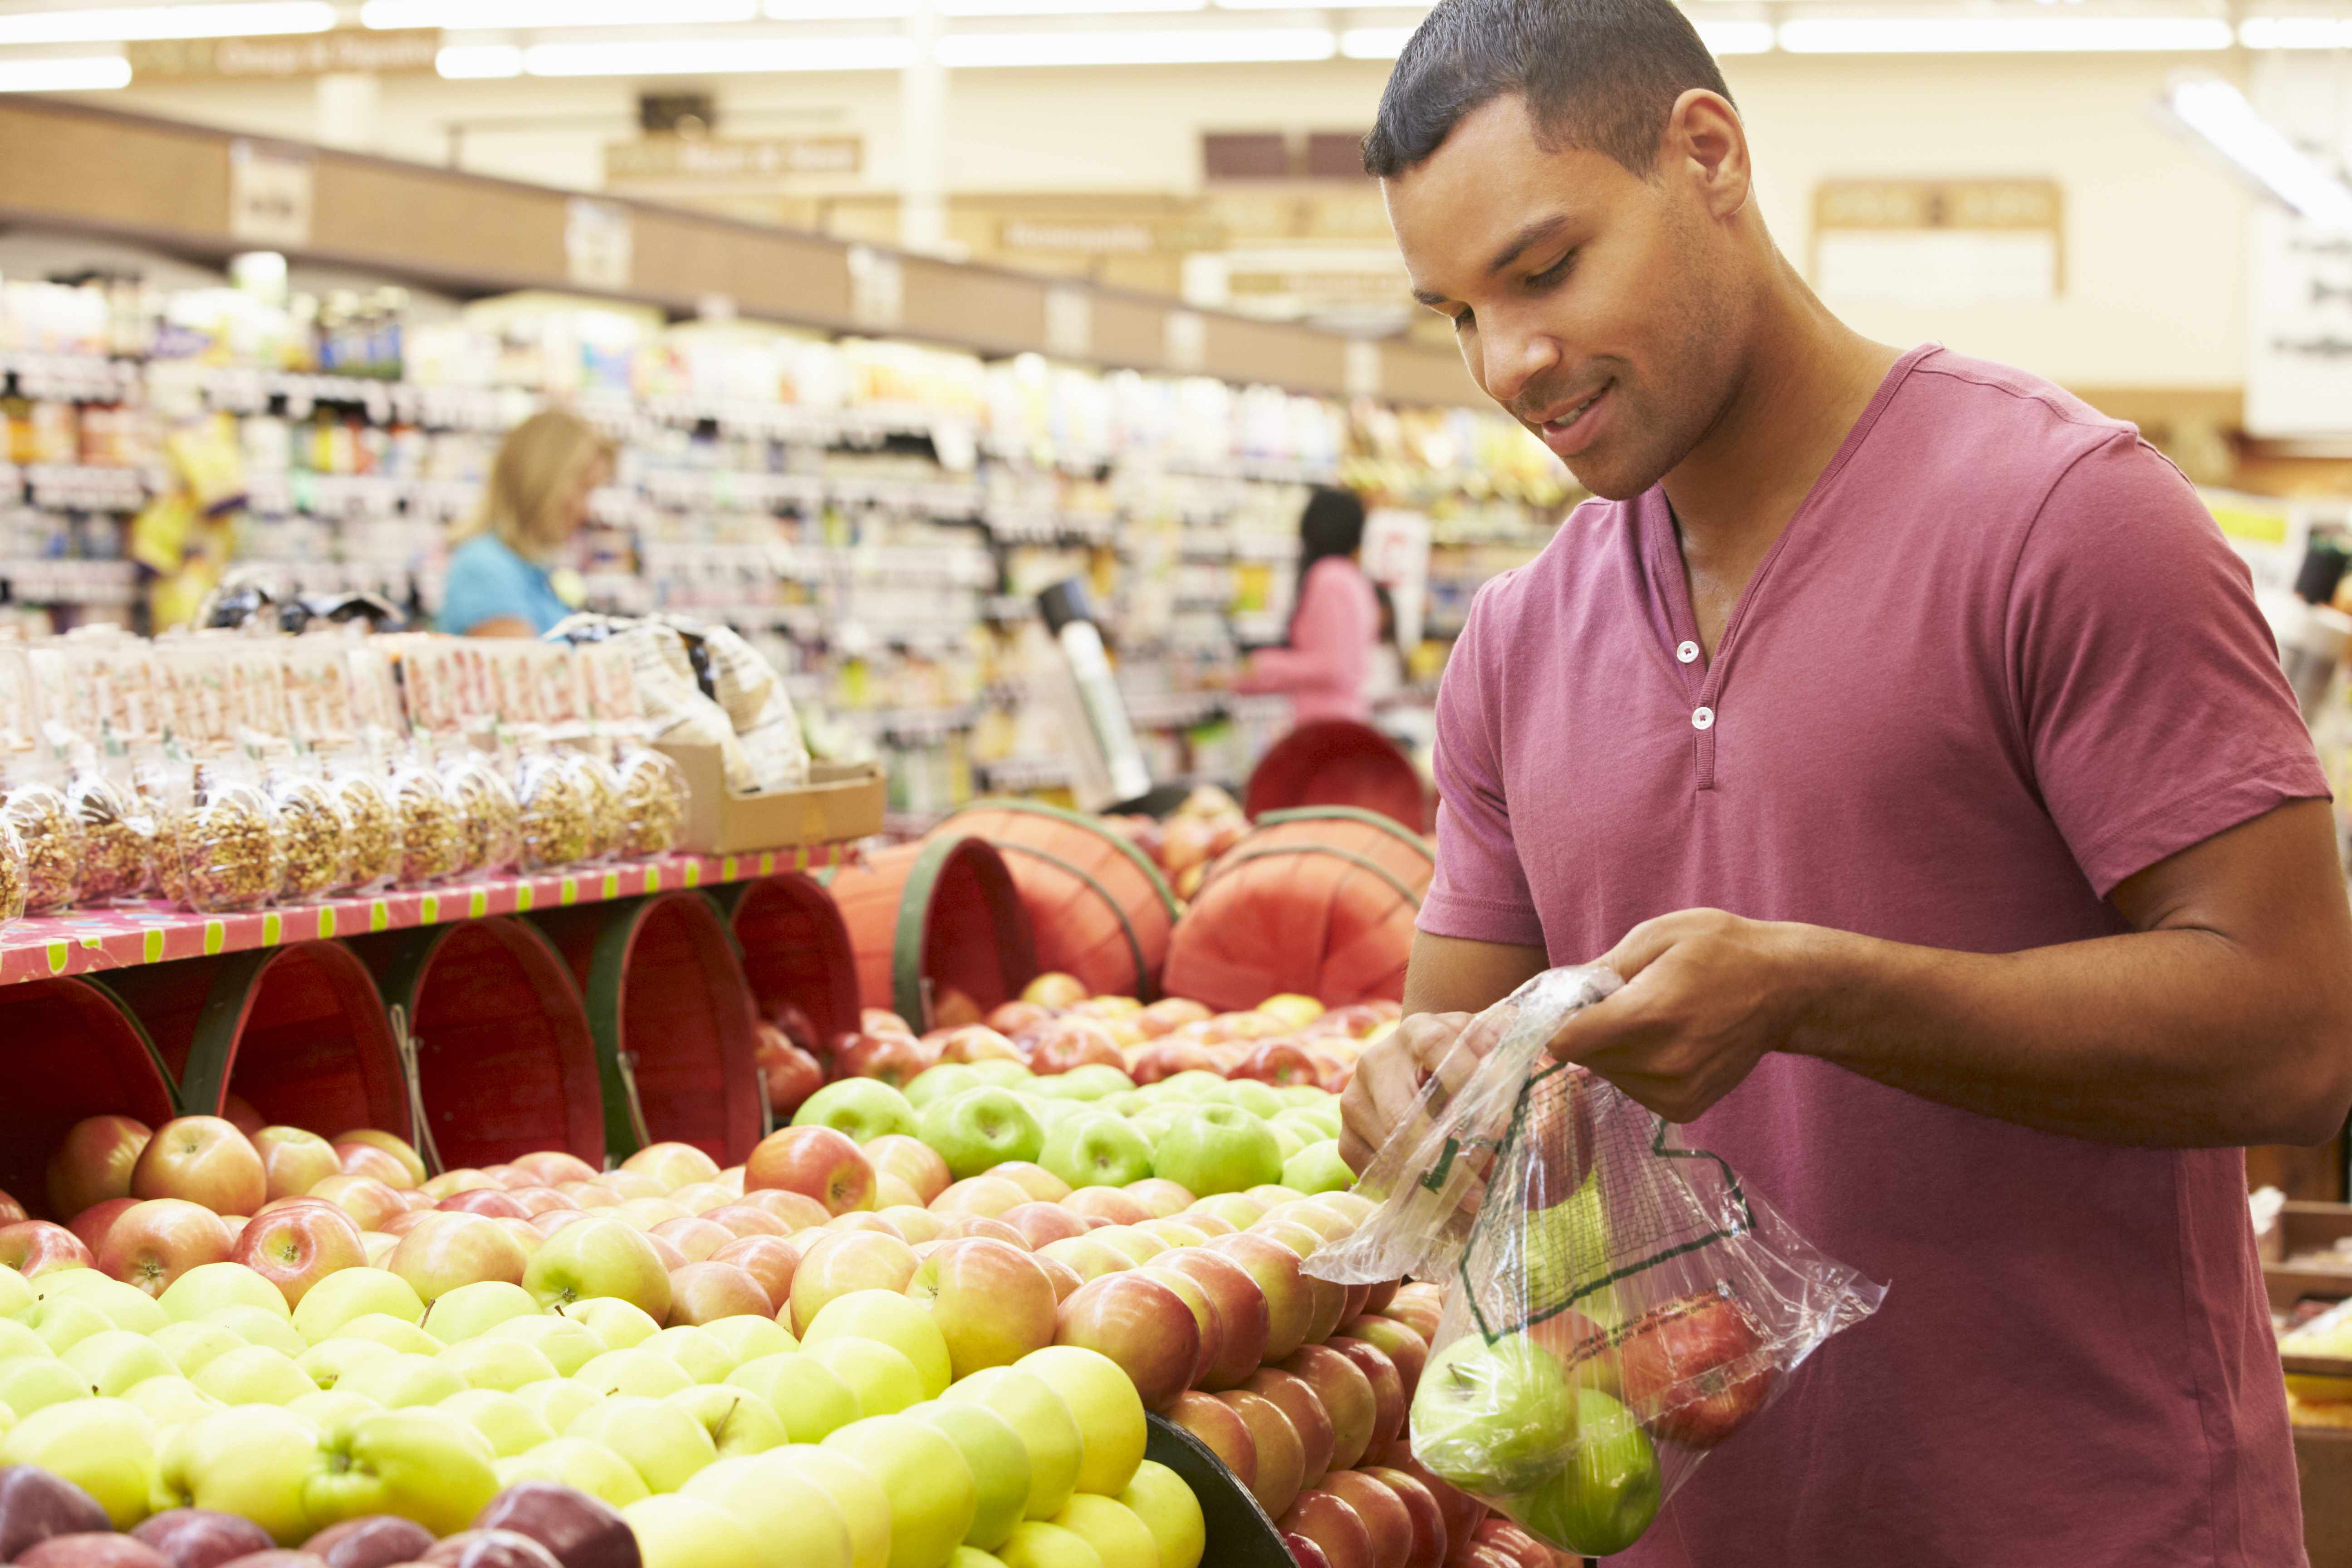 a young African-American man grocery shopping in a store for healthy food, picking fruits for his bag